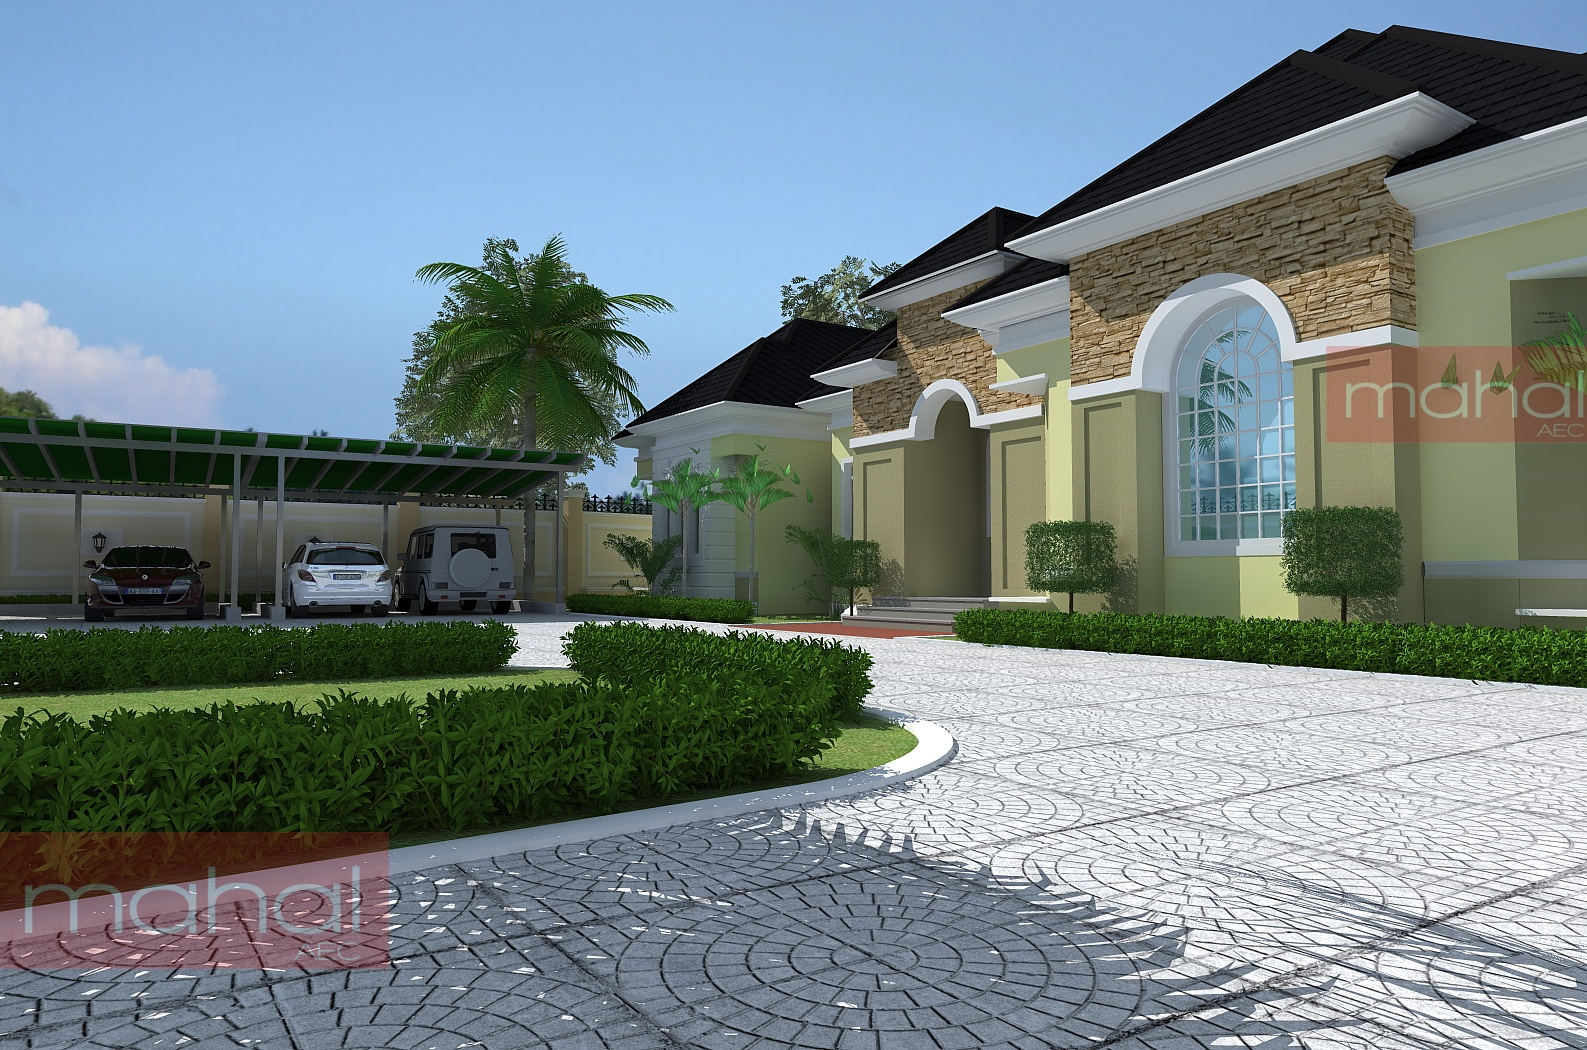 Luxury 5 bedroom bungalow ido type 2